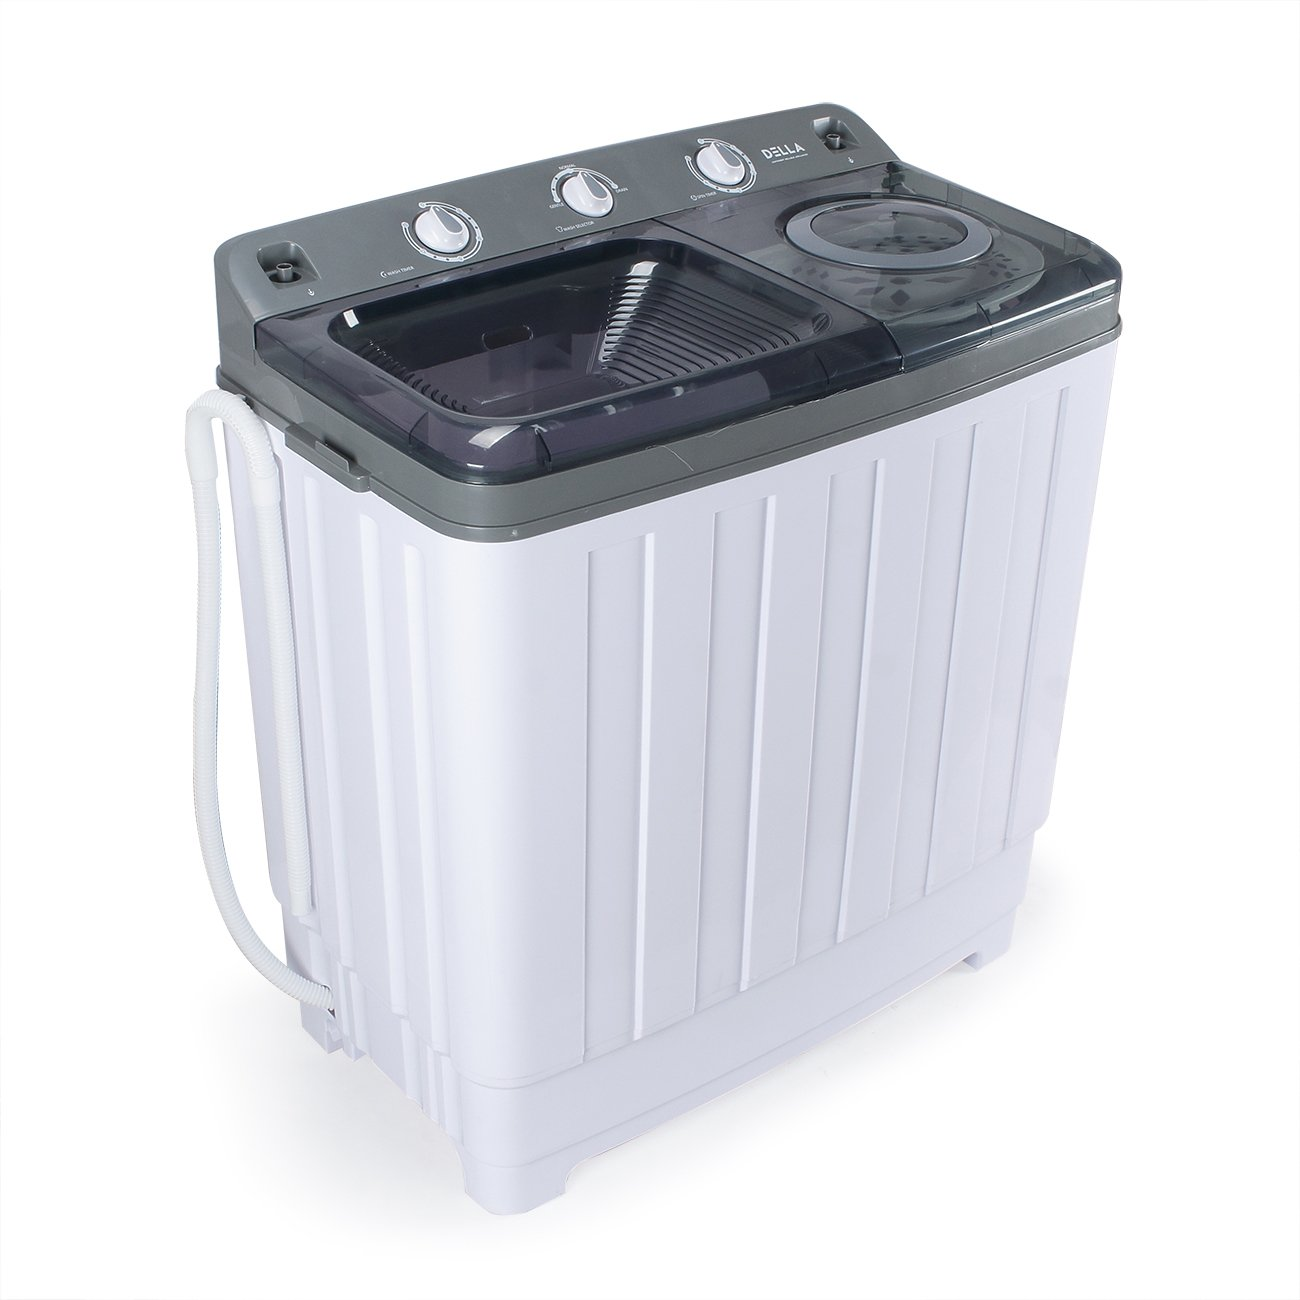 ARKSEN DELLA | Portable Washing Machine | Dual Twin Tub | Spin Dry | Built in Pump | 14KG | 30 LBS. Capacity| Dorm | Home | RV | White